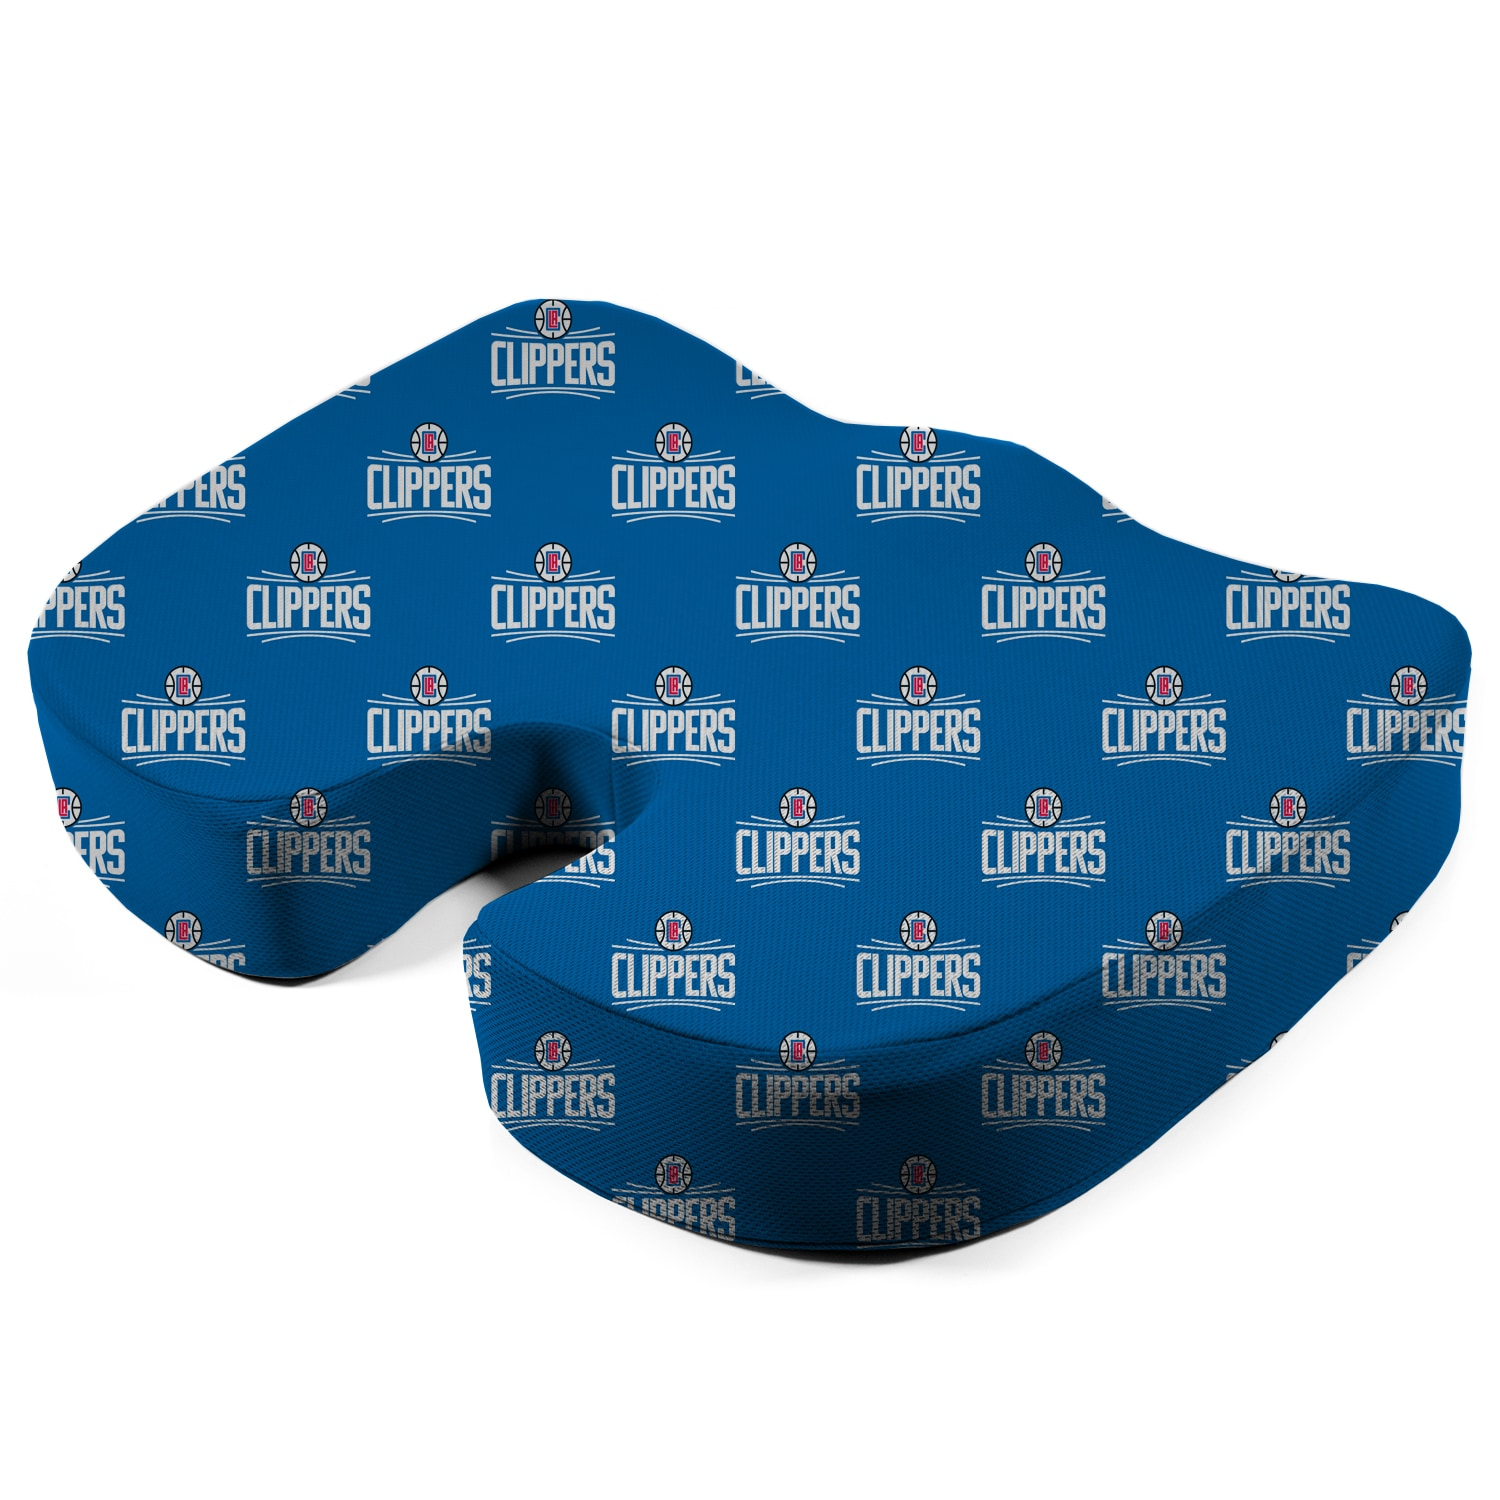 LA Clippers Memory Foam Seat Cushion